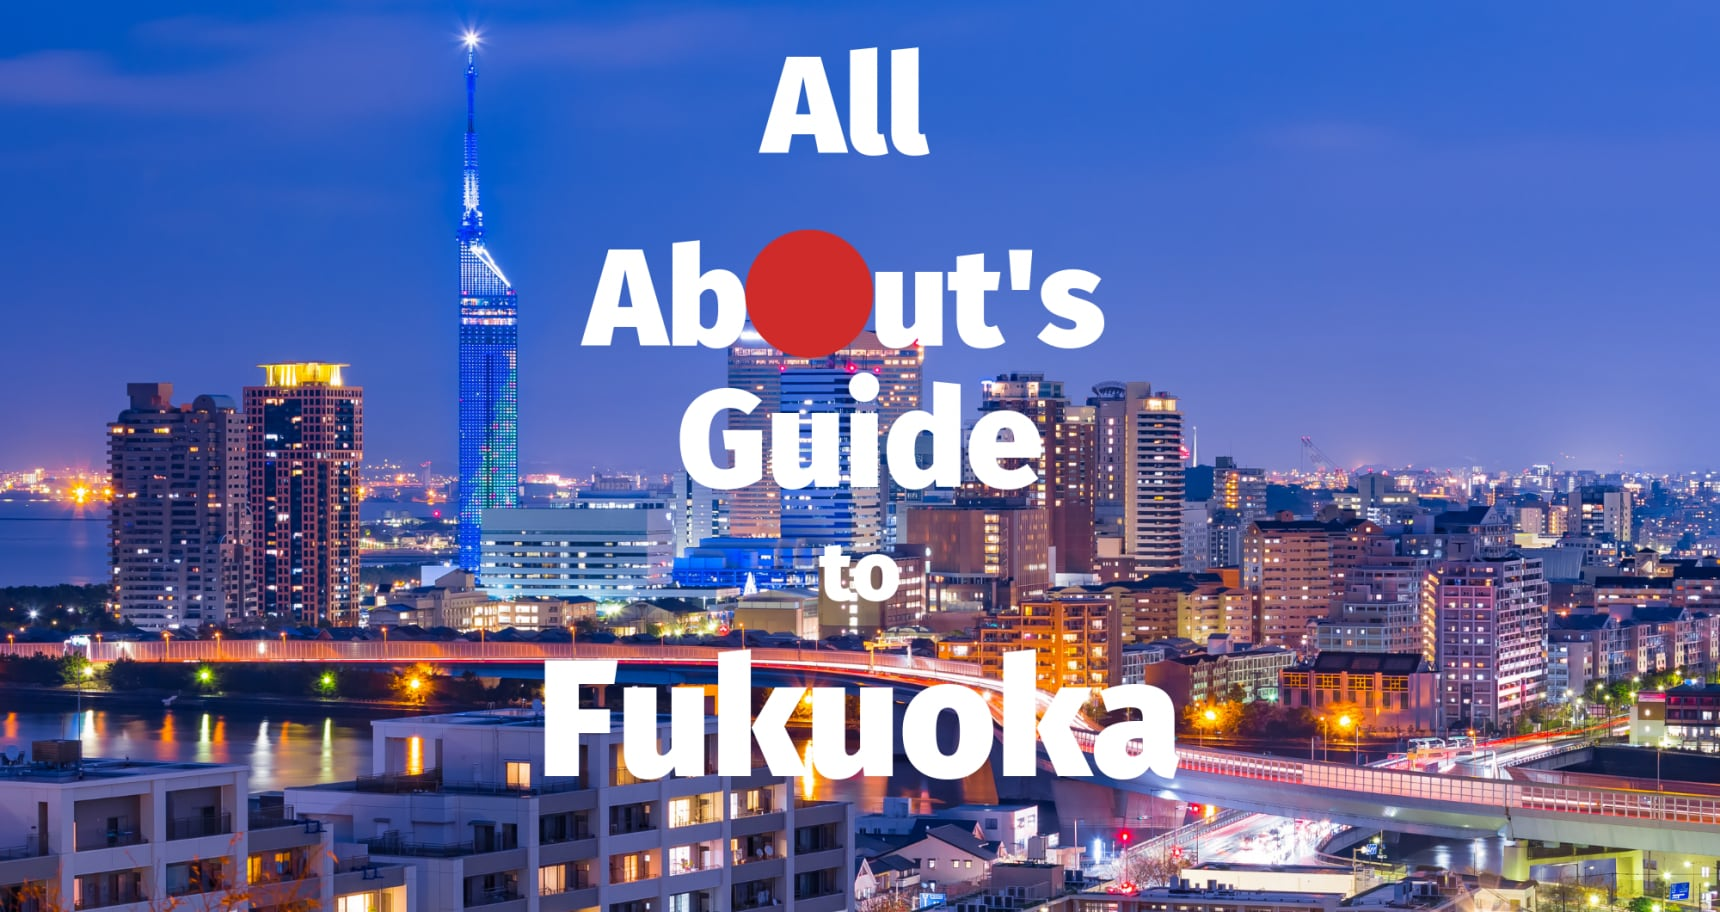 All About's Guide to Fukuoka